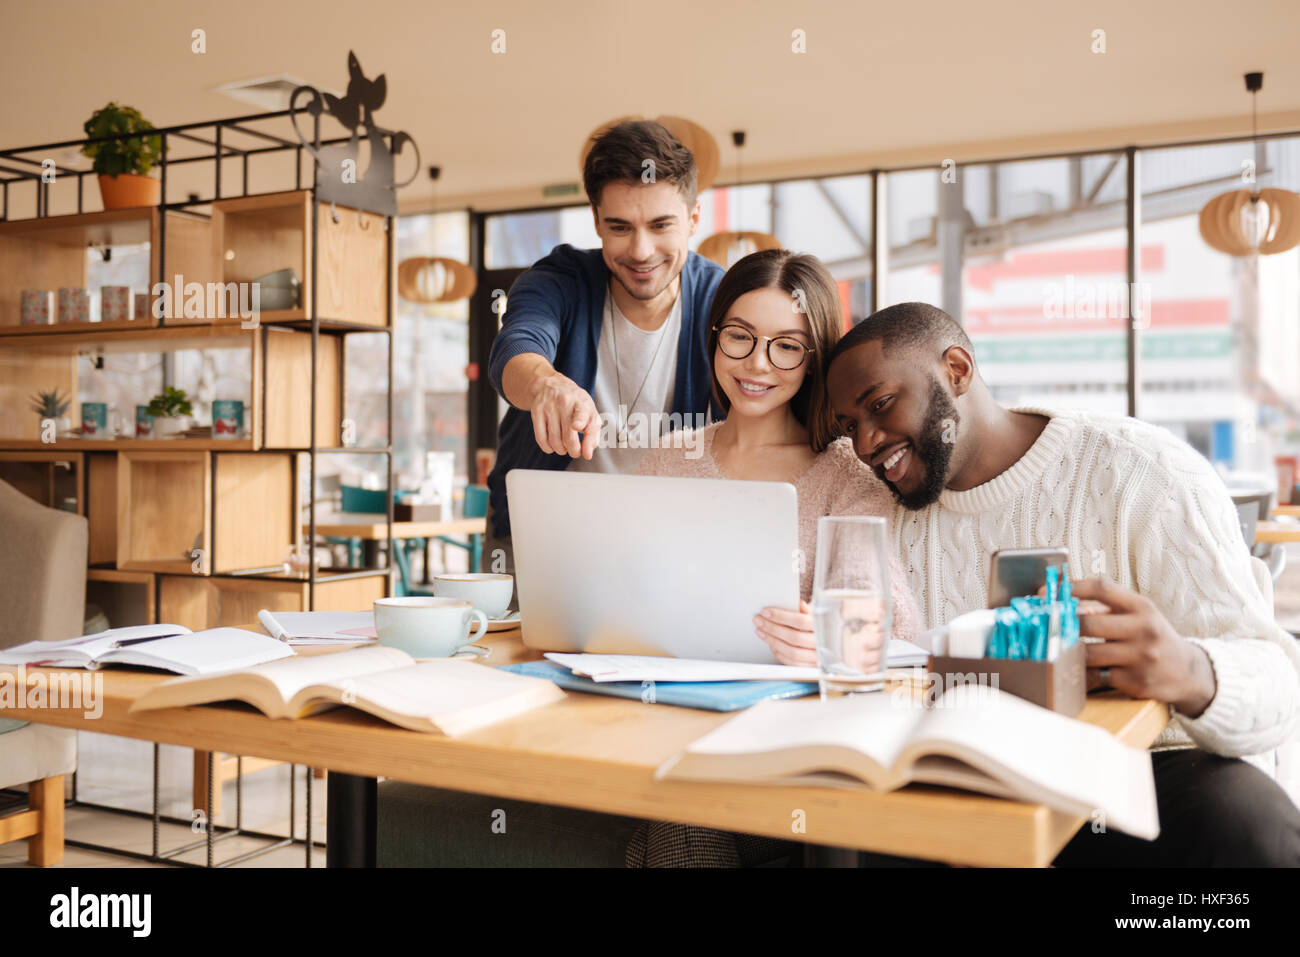 Positive students working on the project together - Stock Image